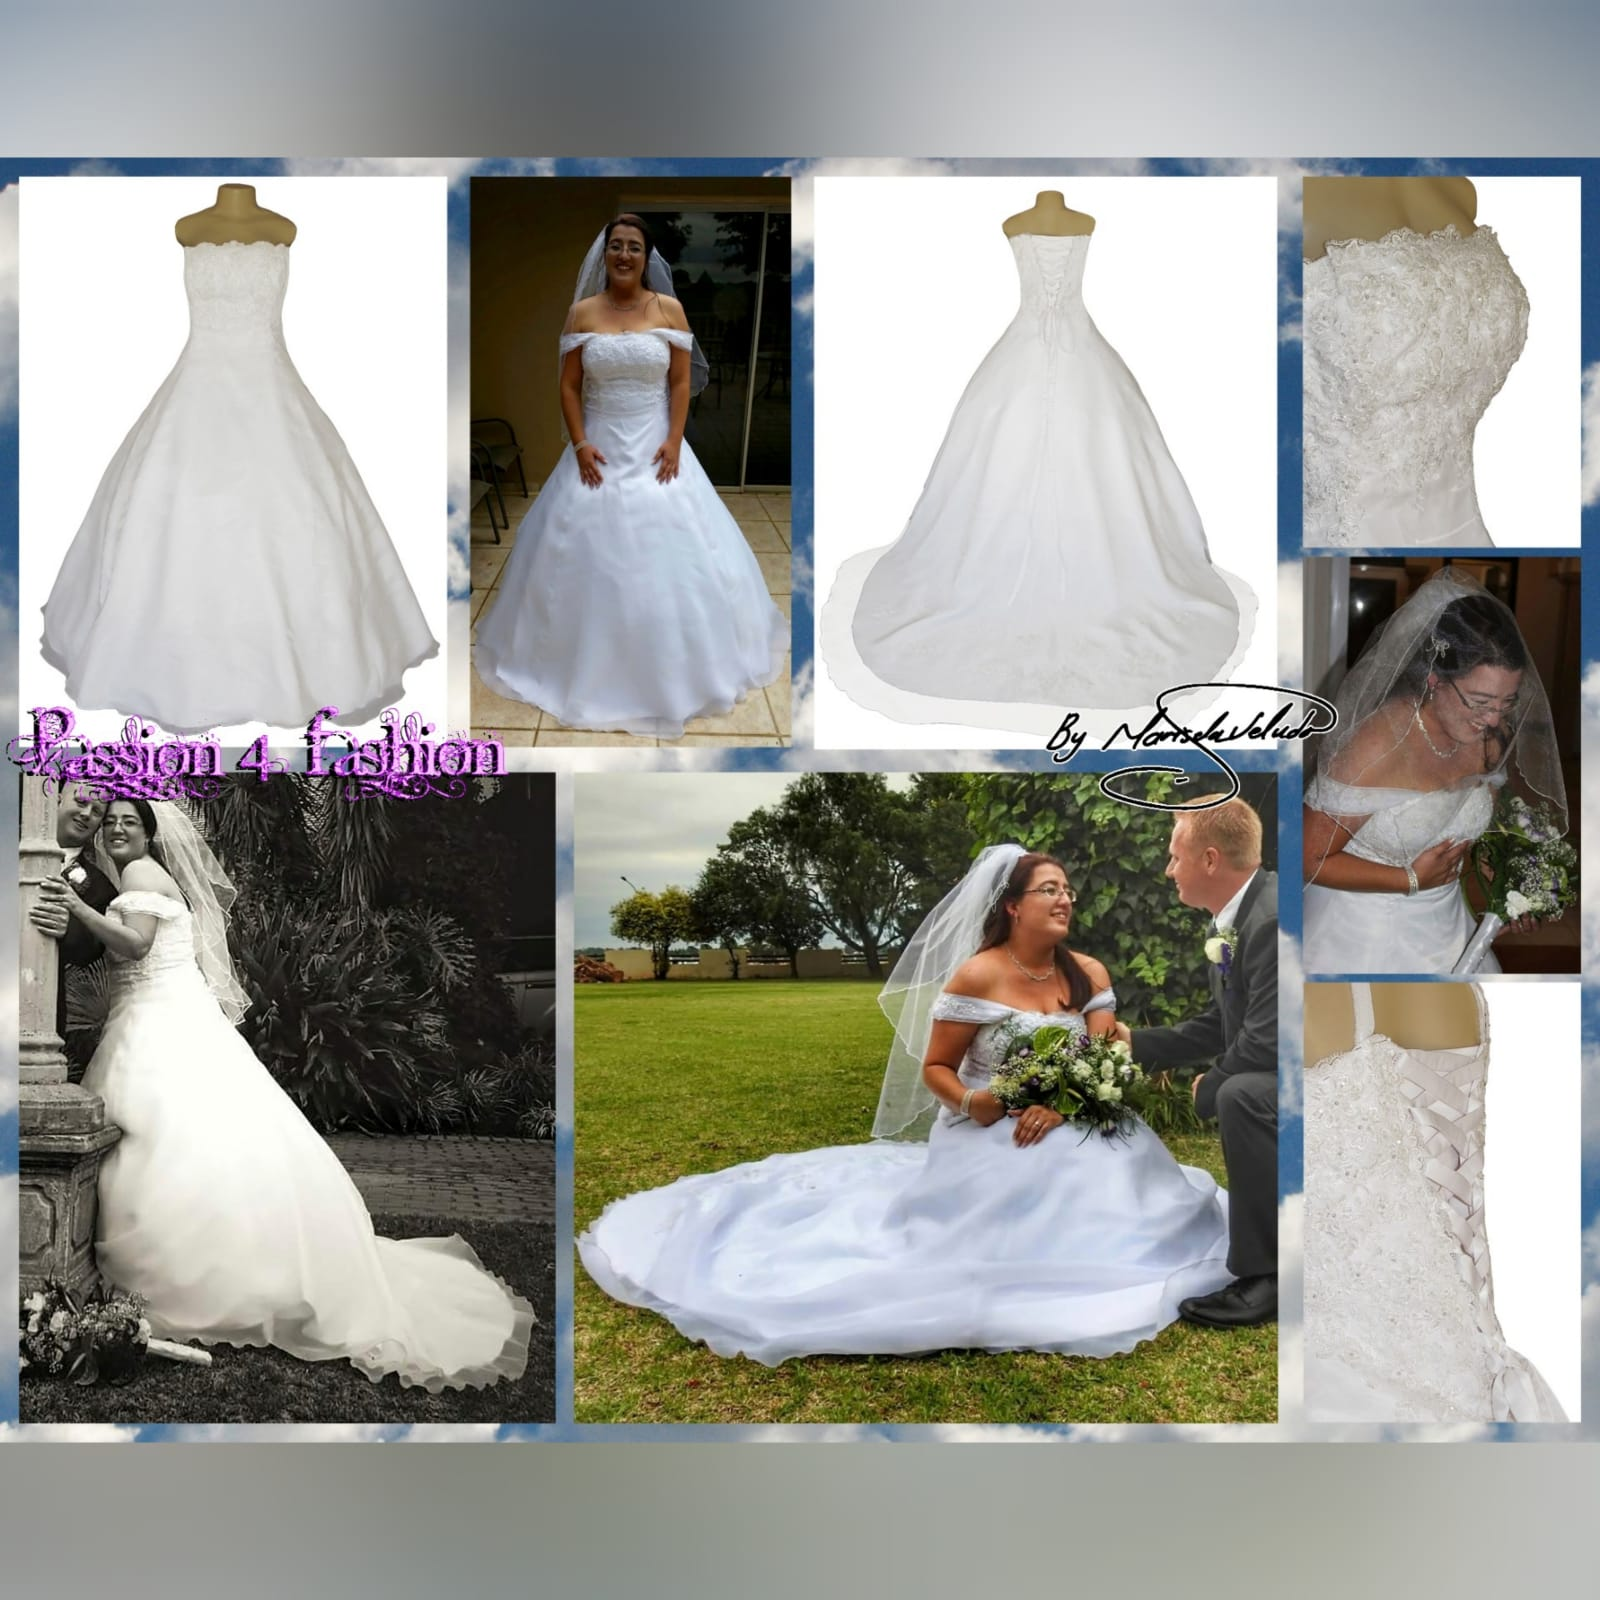 White organza a-line boob tube custom made wedding ball gown 6 white, organza, a-line, boob tube, custom-made wedding ball gown. Bodice detailed with lace. Lace-up back. With a train & removable off-shoulder pleated organza straps detailed with lace. With shimmer blush length veil.